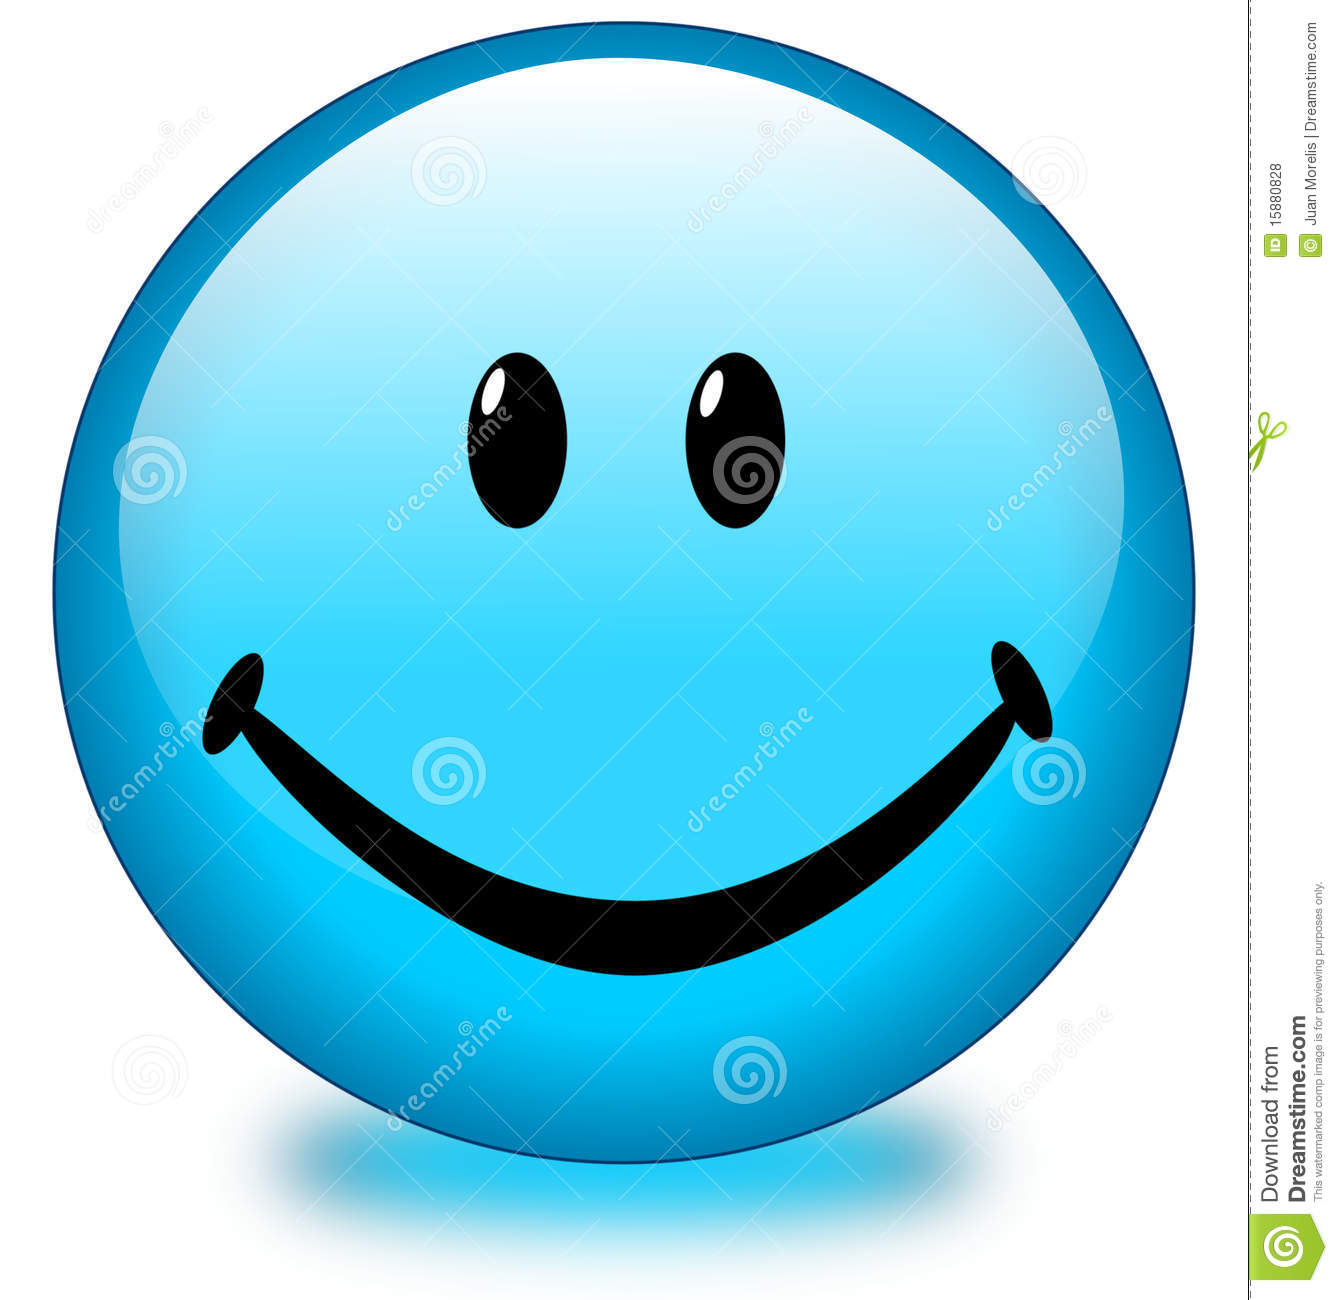 Blue Smiley Face Button Royalty Free Stock Photos - Image: 15880828 Angry Black Woman Face